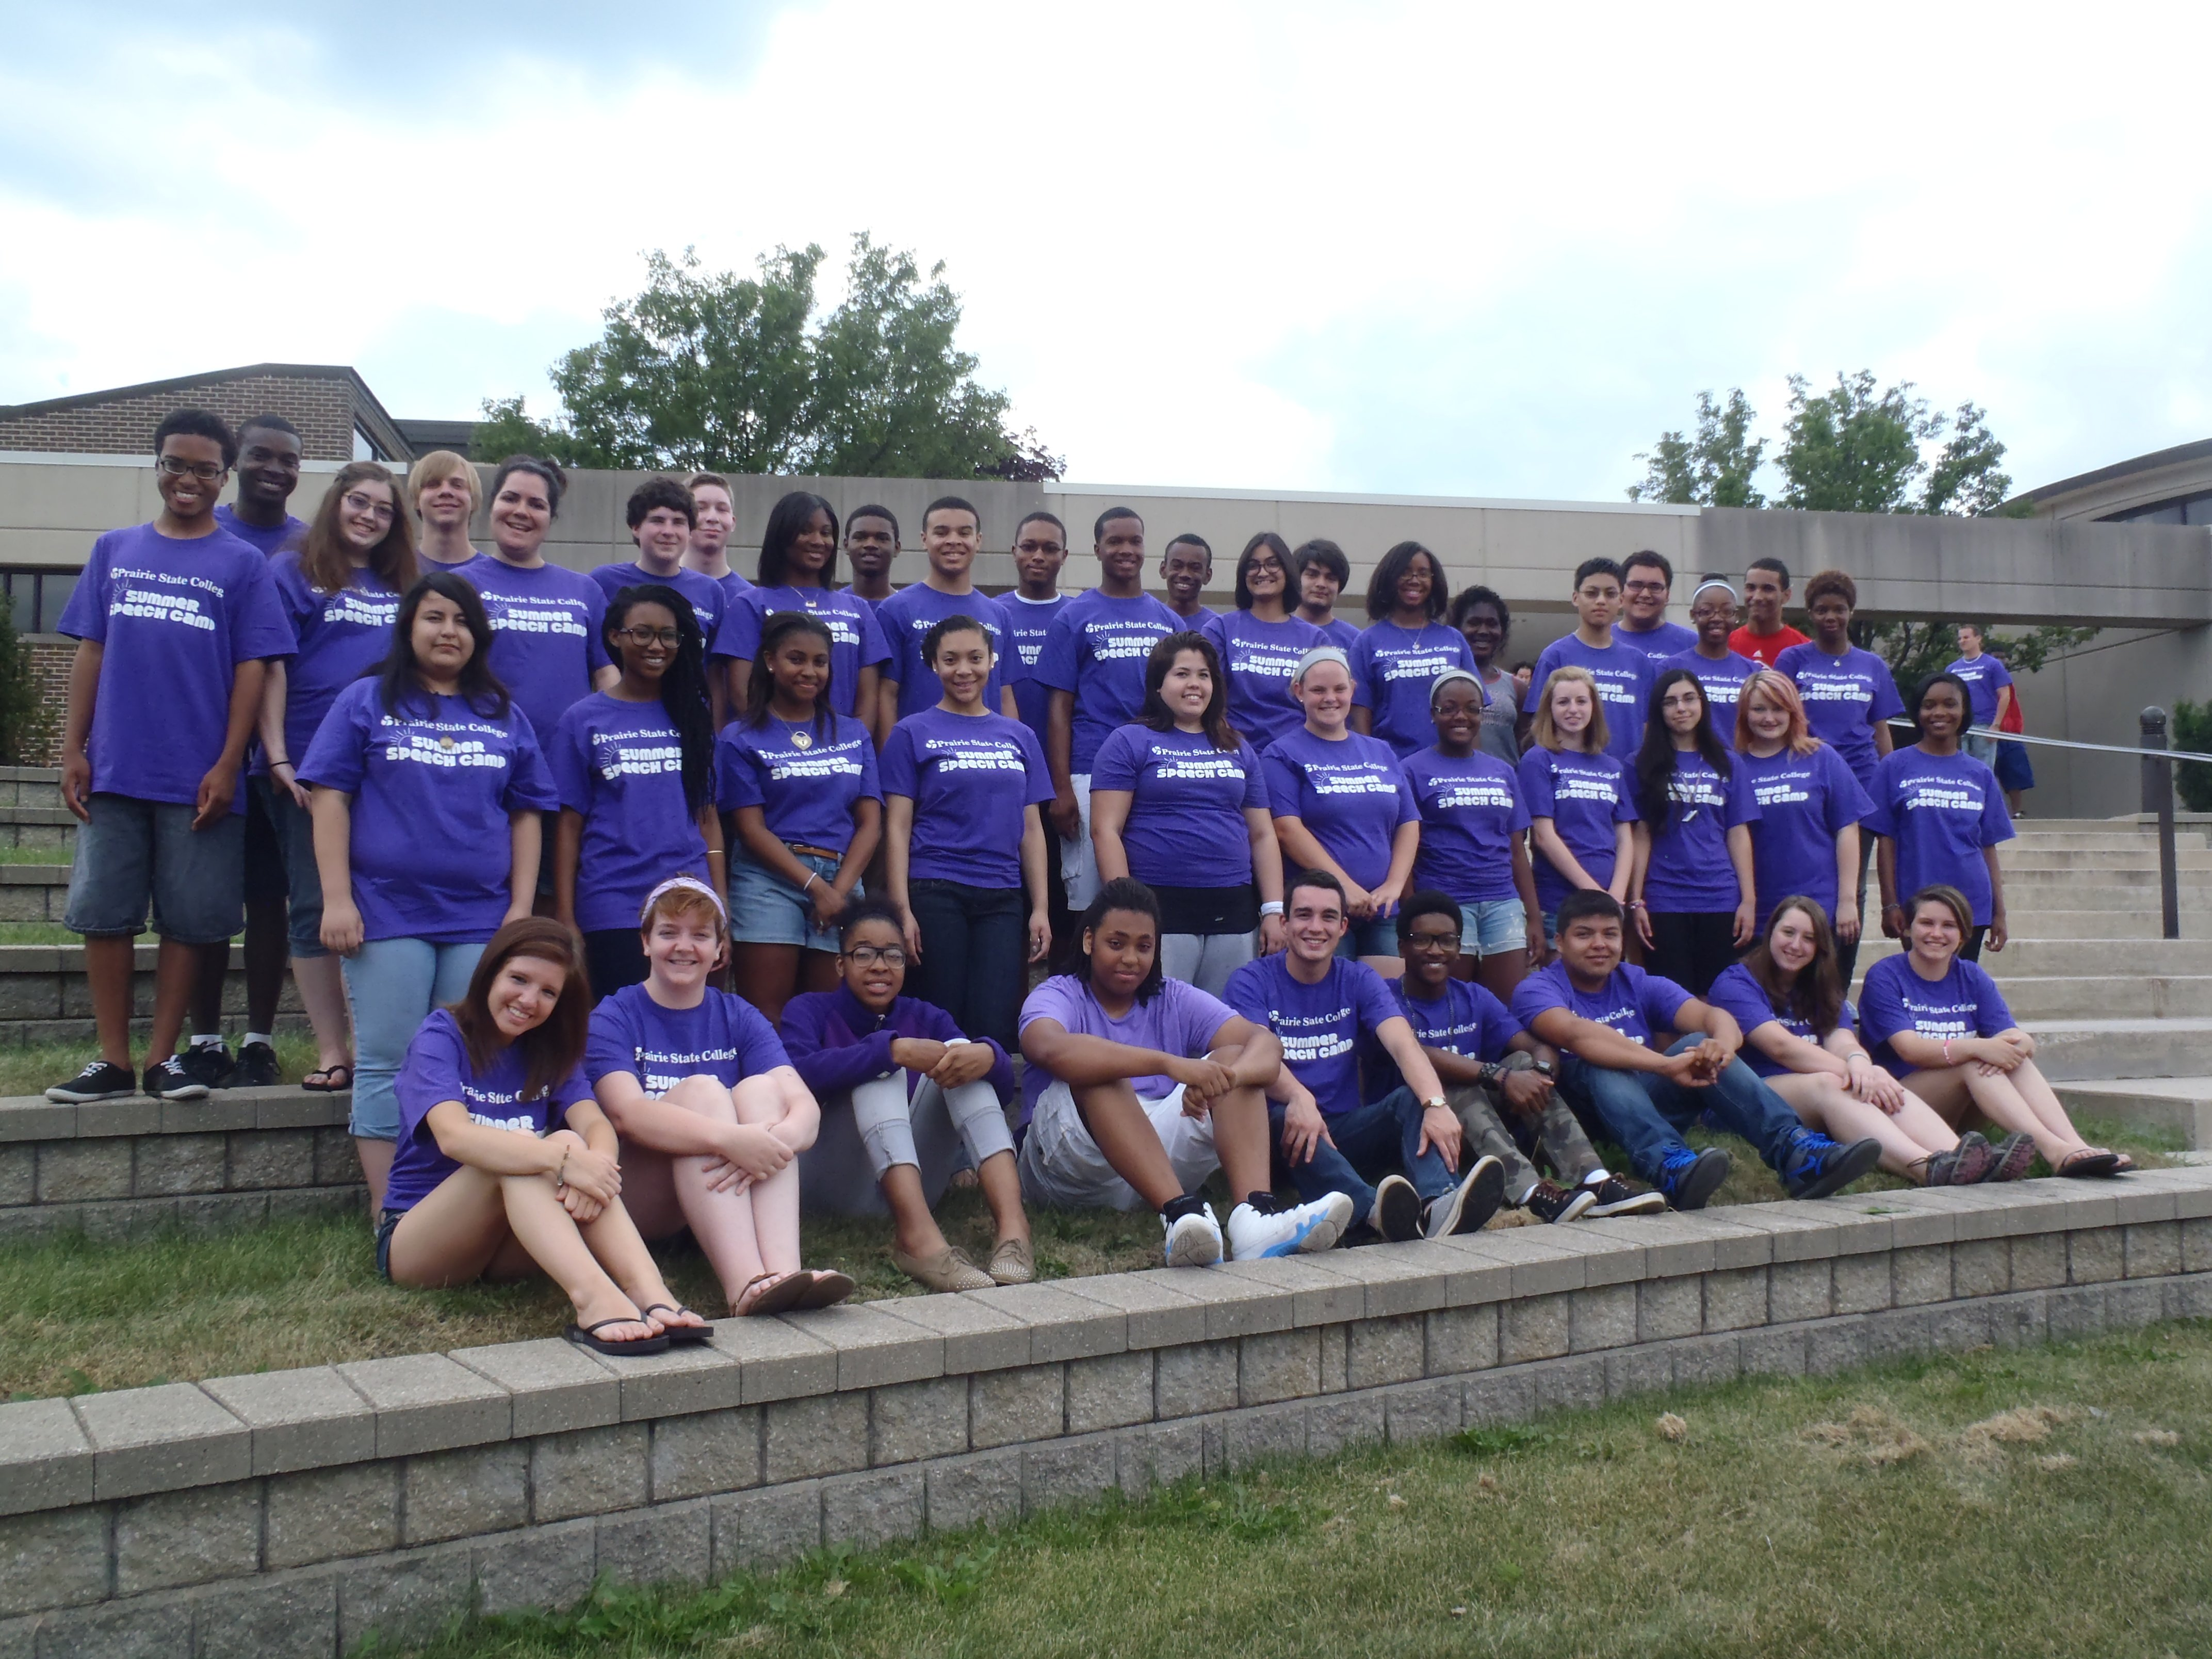 Pictures from previous PSC Summer Speech Camps